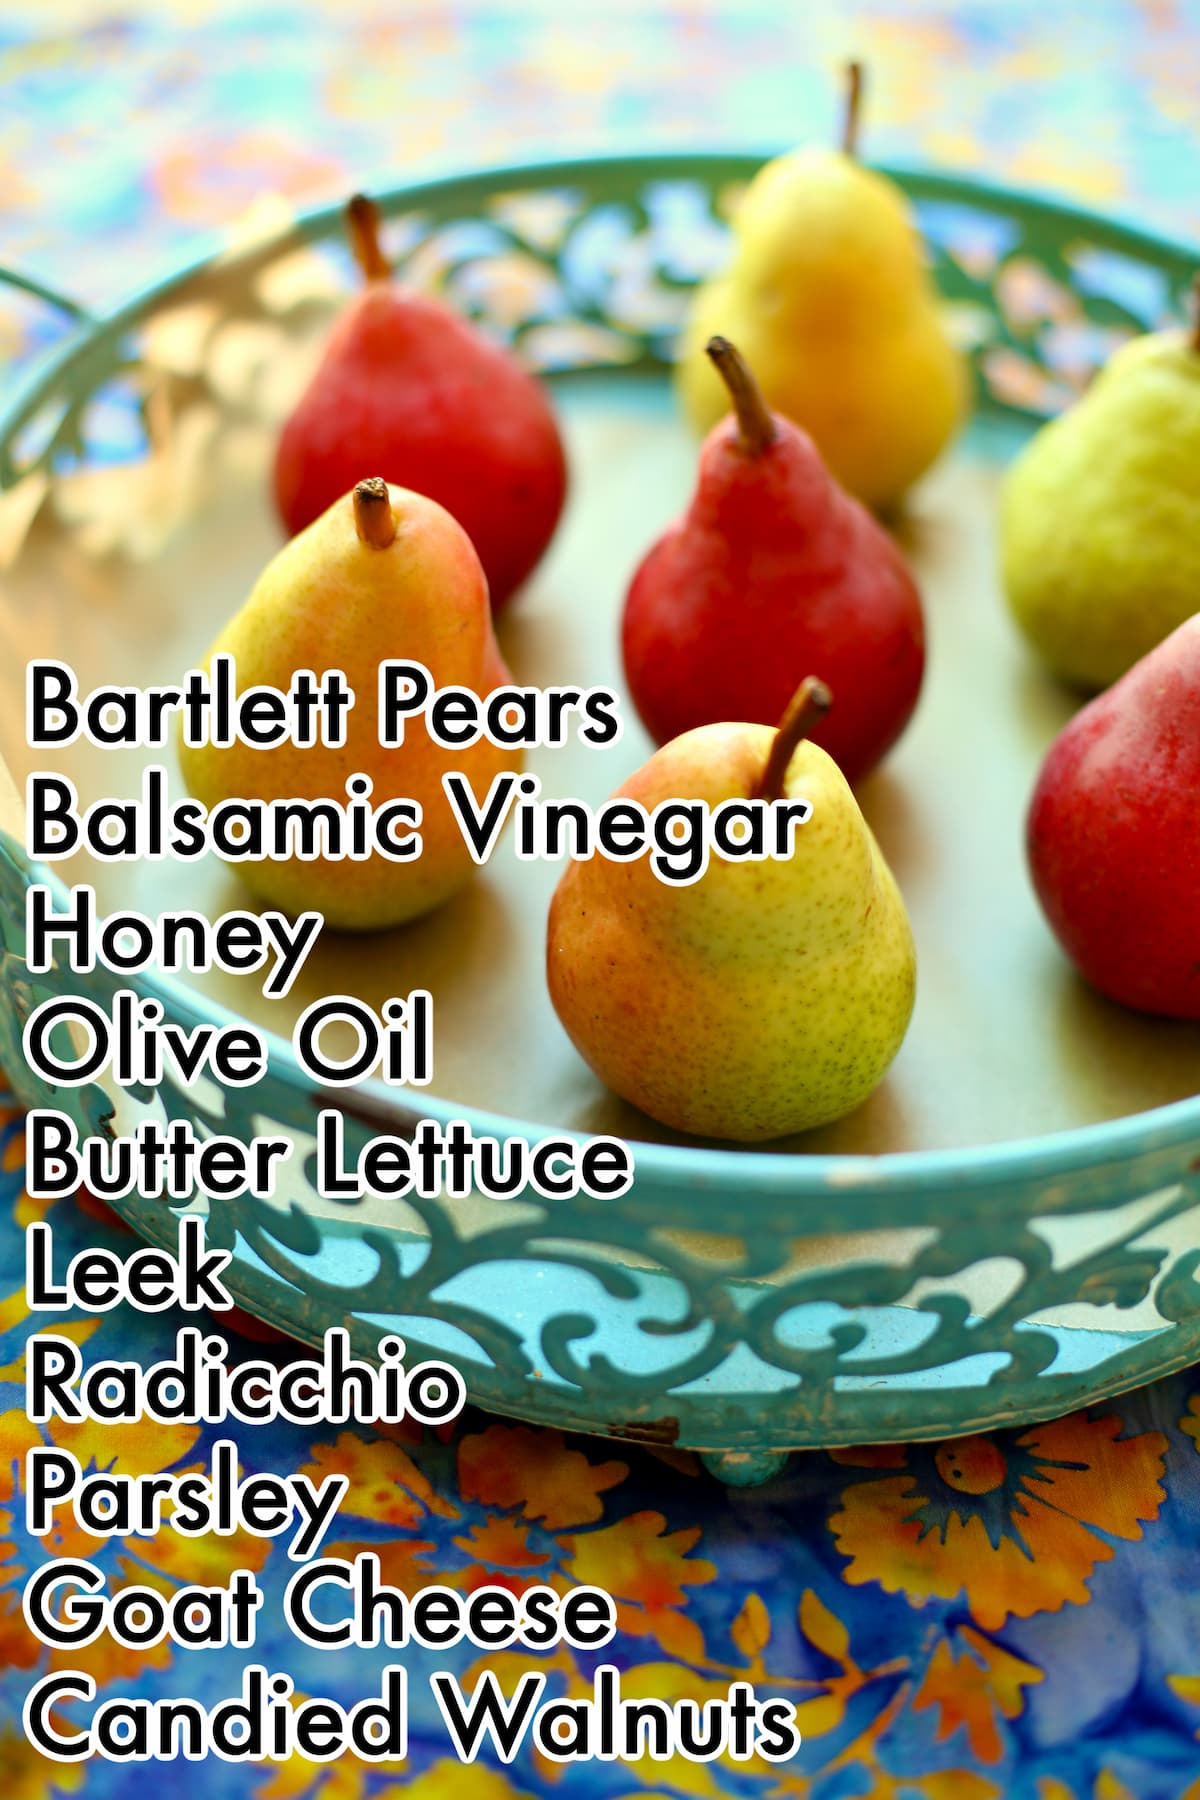 a blue tray of Bartlett Pears on a table with text overlay of ingredient names for a pan roasted pear salad